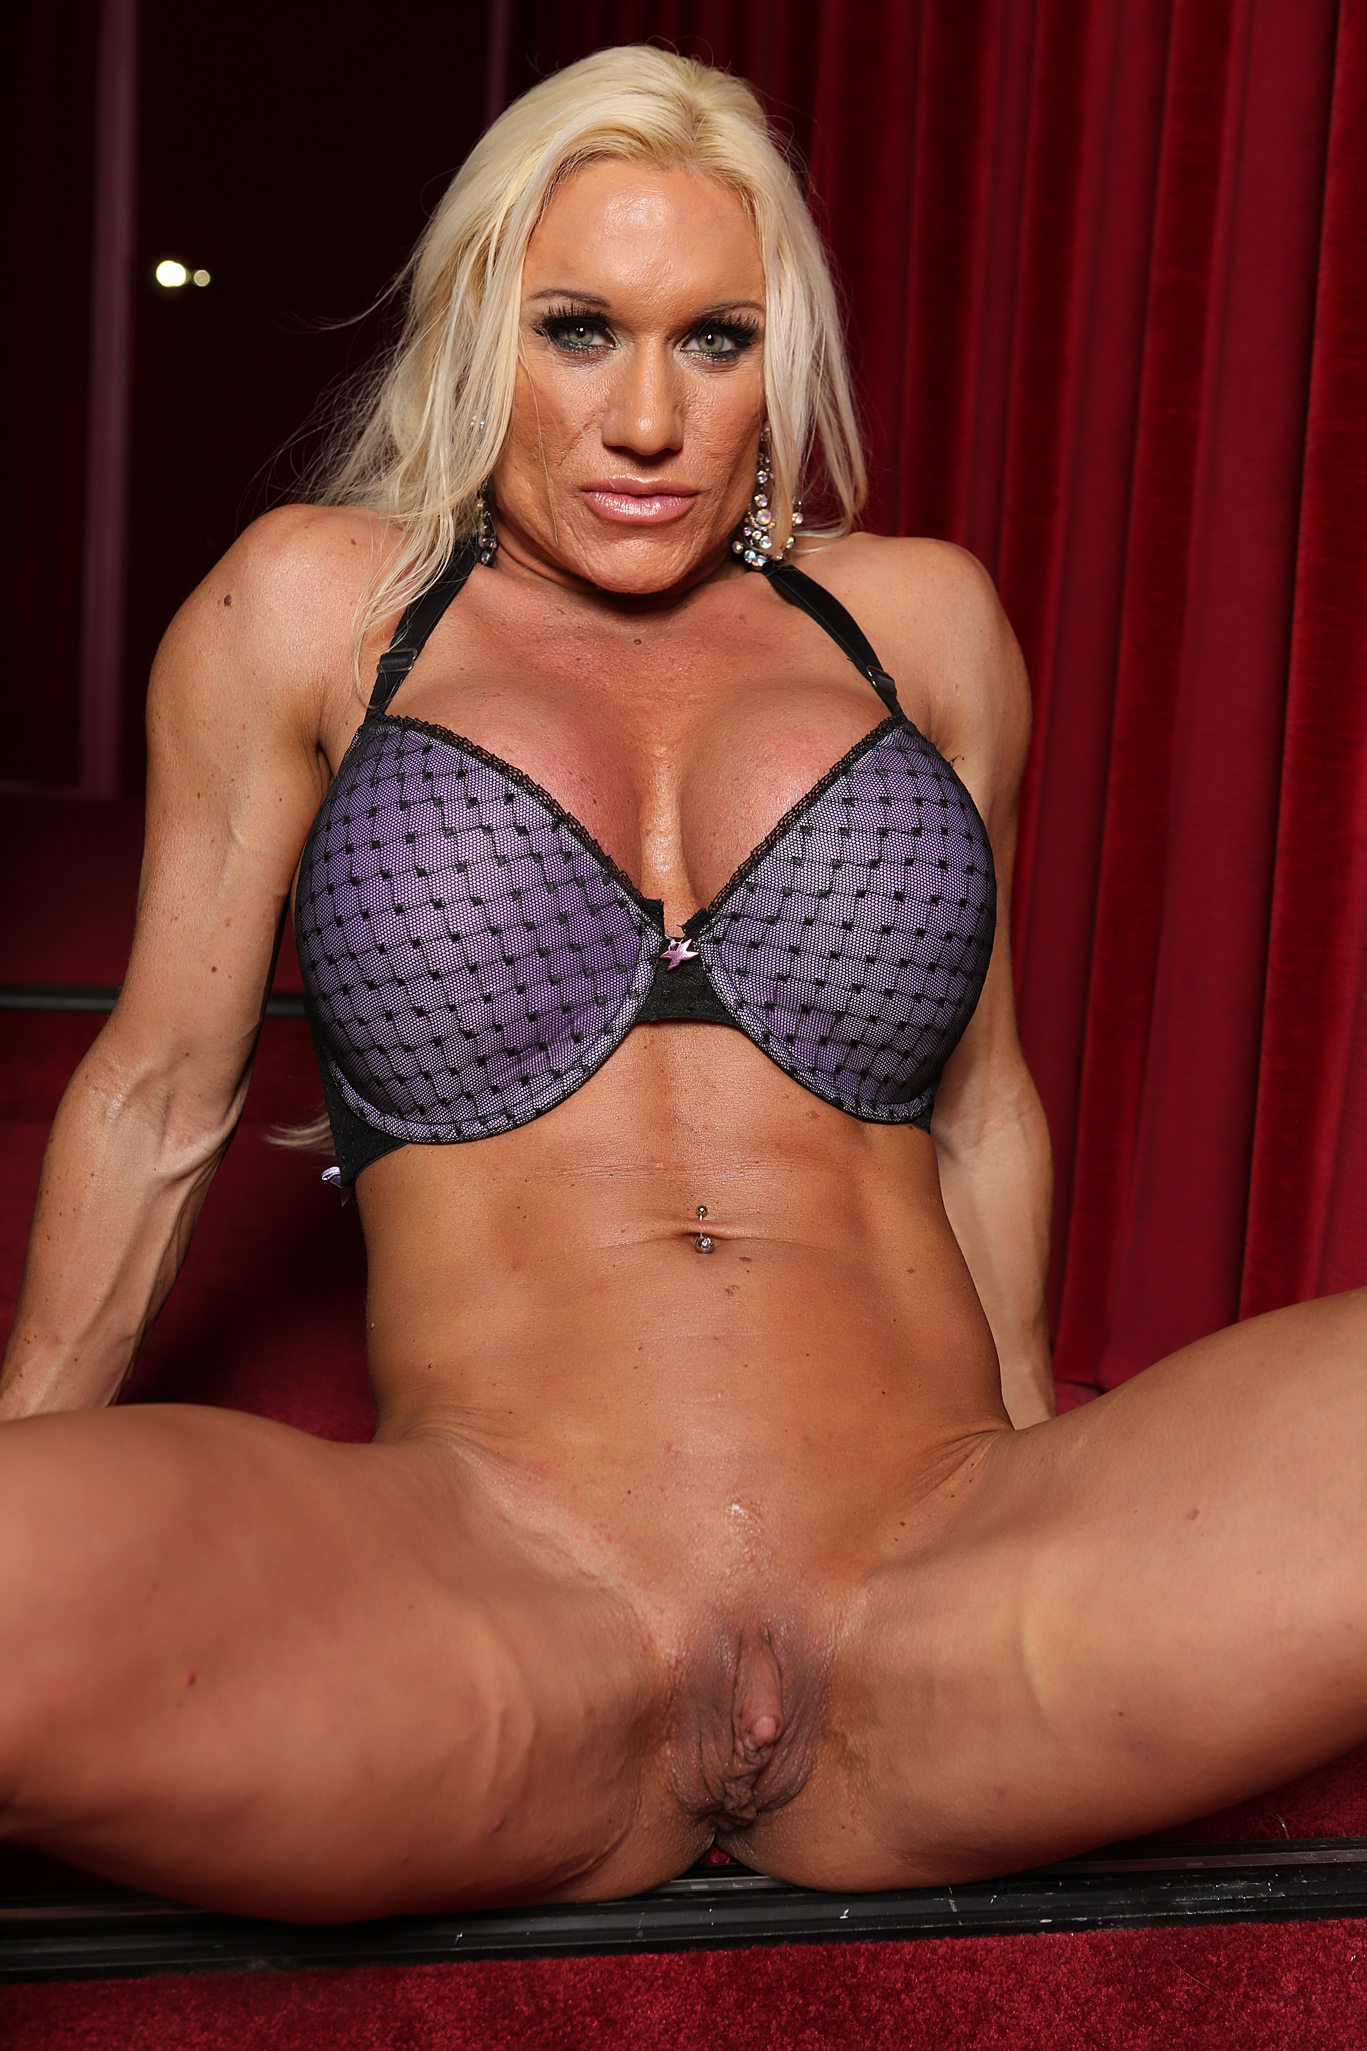 All Ashlee chambers bodybuilder are similar